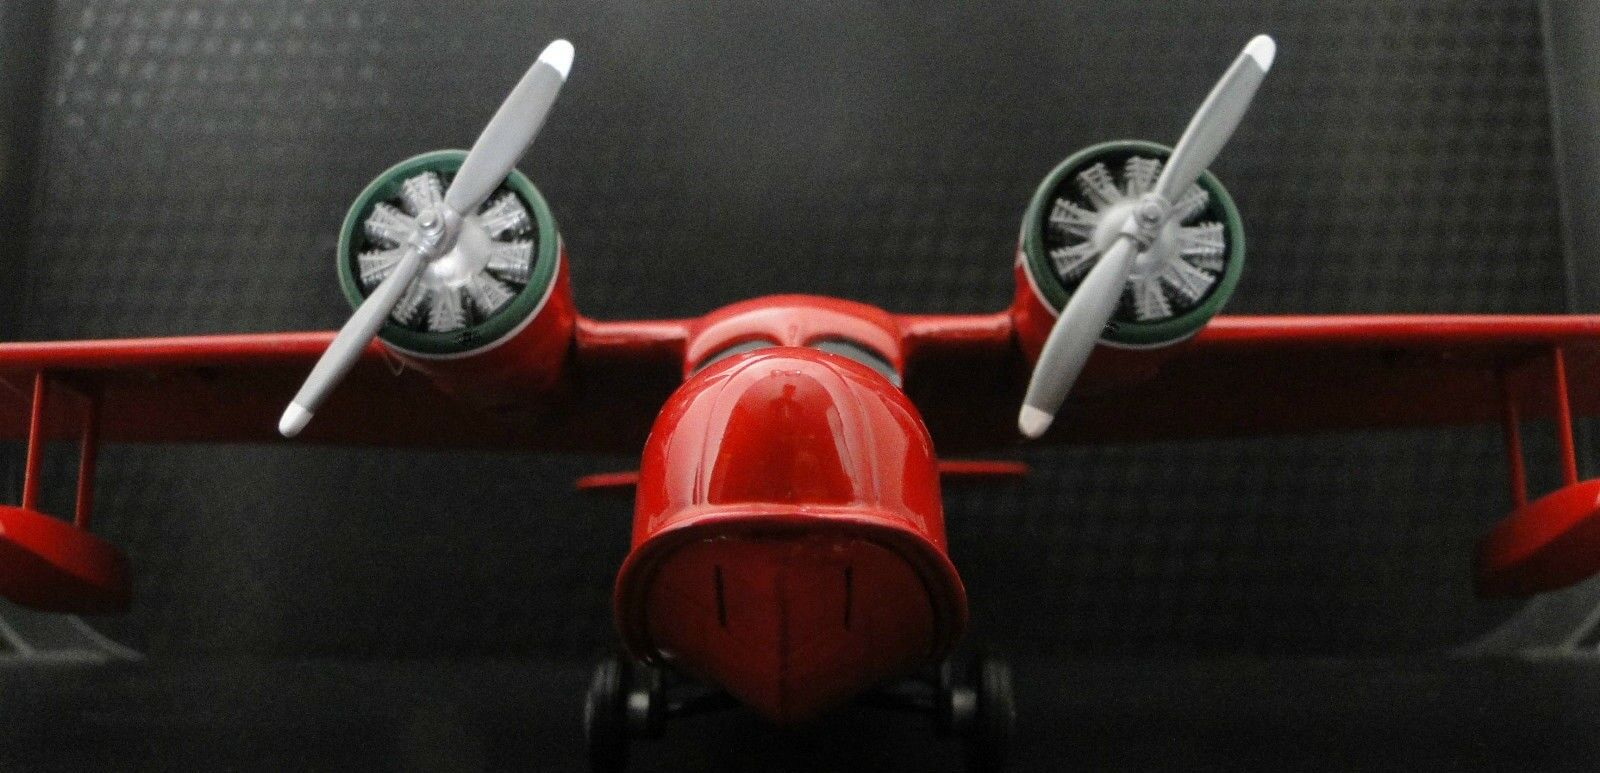 Aircraft Airplane Military Model Diecast Armor WW2 Vintage 1 48 Carousel Red b17